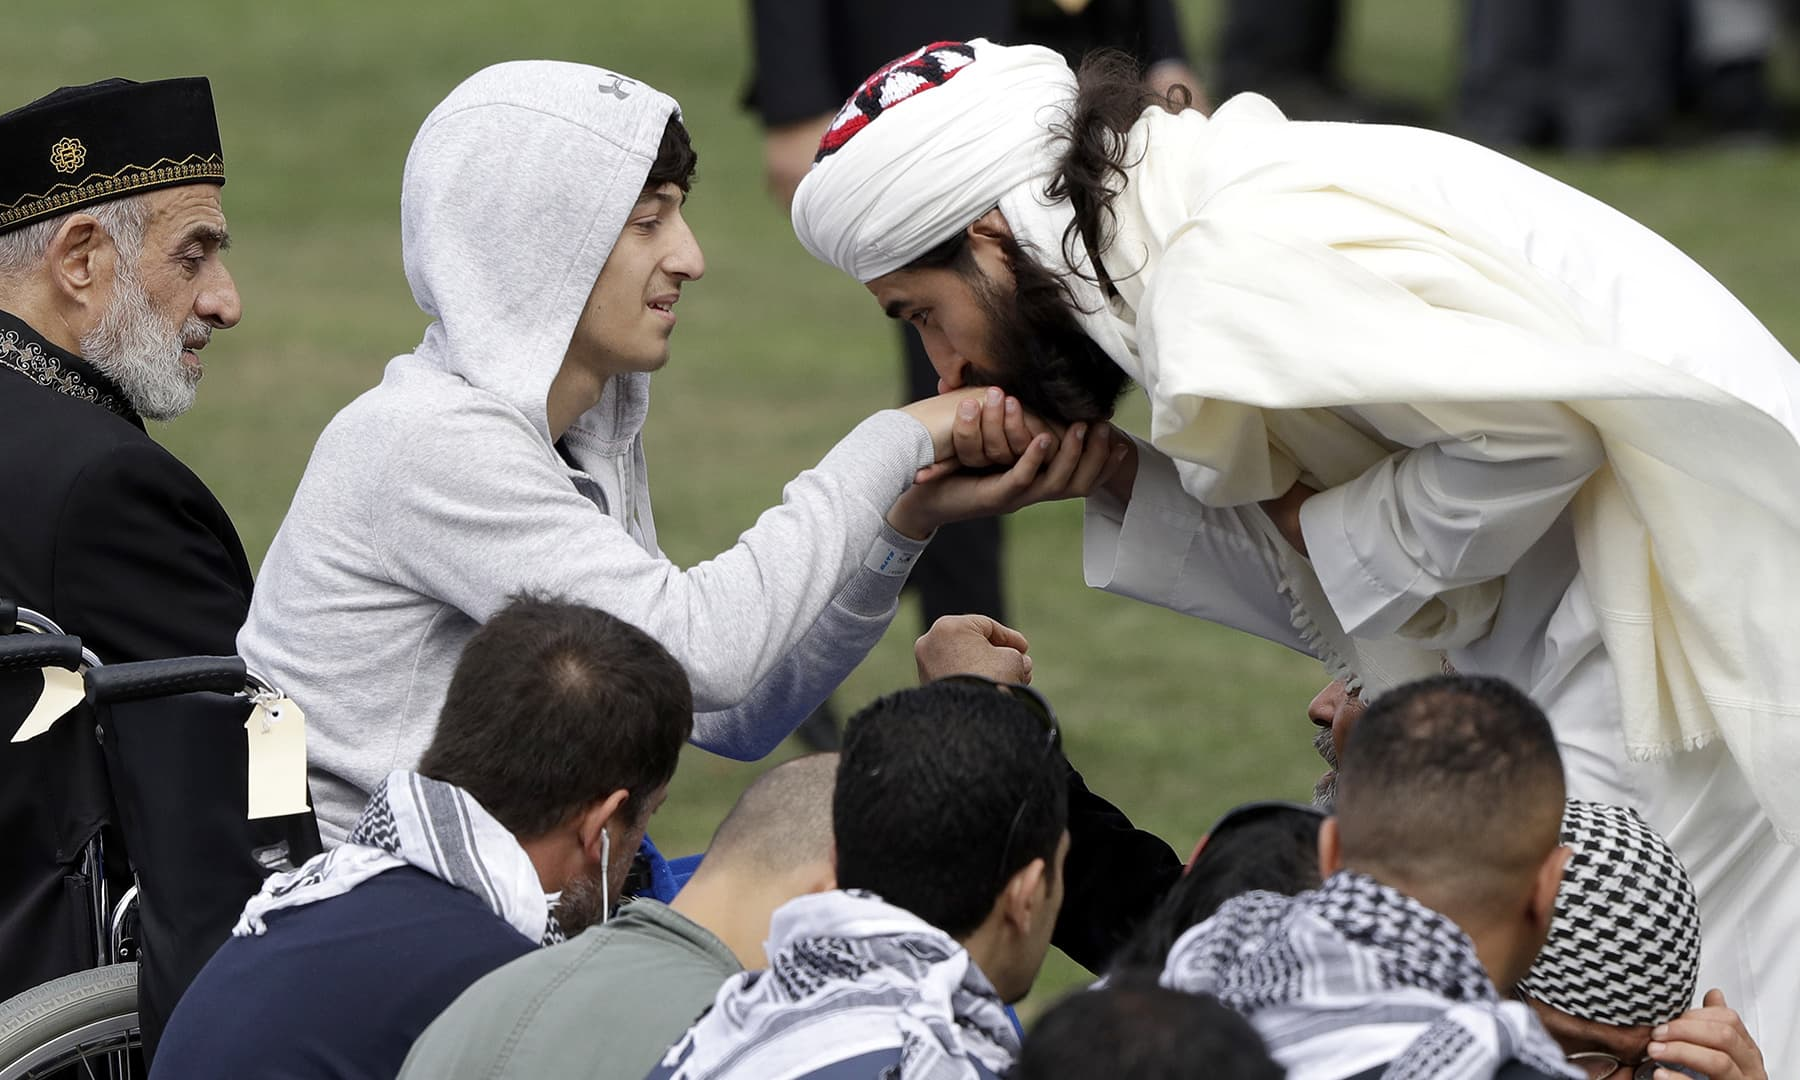 Zaid Mustafa, second left, son and brother of victims from last week's mosque shootings is welcomed to Friday prayers at Hagley Park in Christchurch. — AP